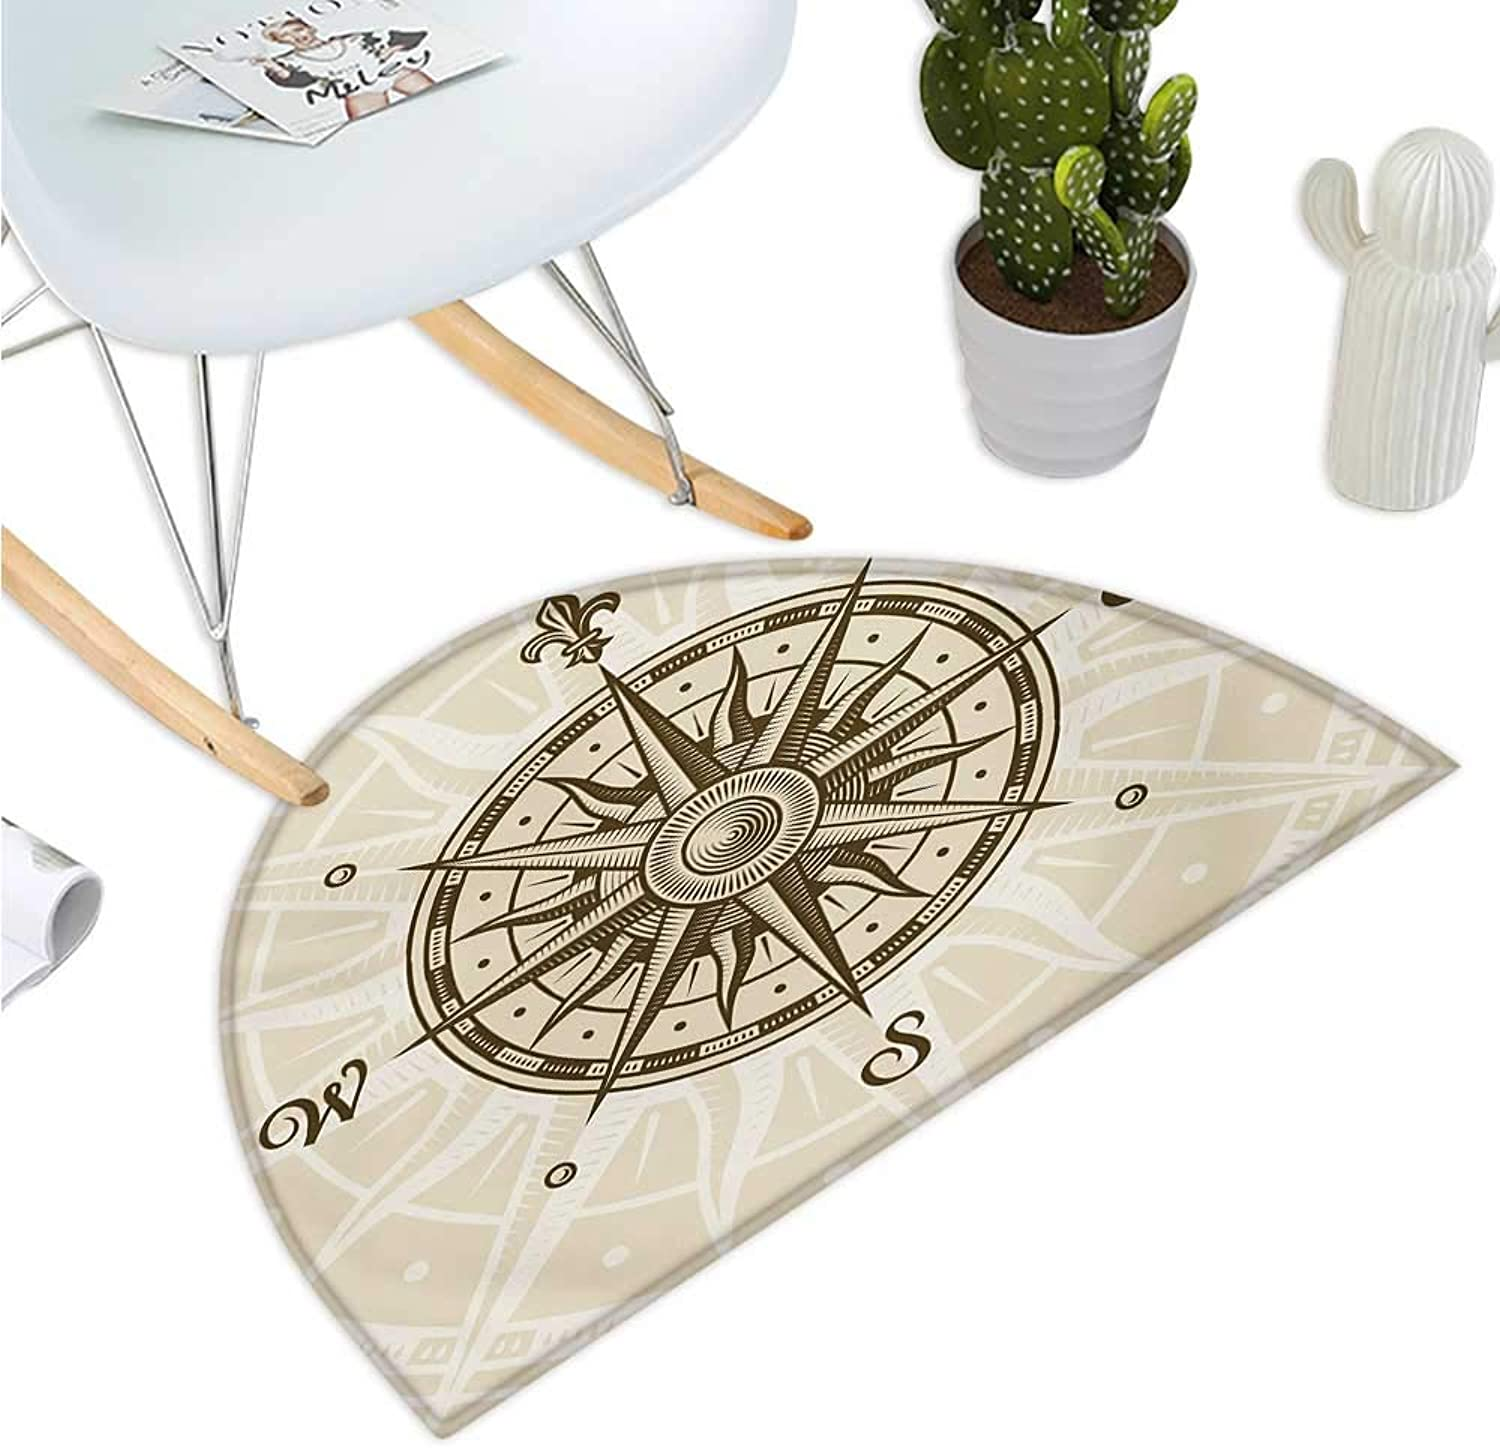 Compass Semicircular Cushion Sun Motif Backdrop with Windpink Directions East West North South Navigation Halfmoon doormats H 43.3  xD 64.9  Olive Green Beige